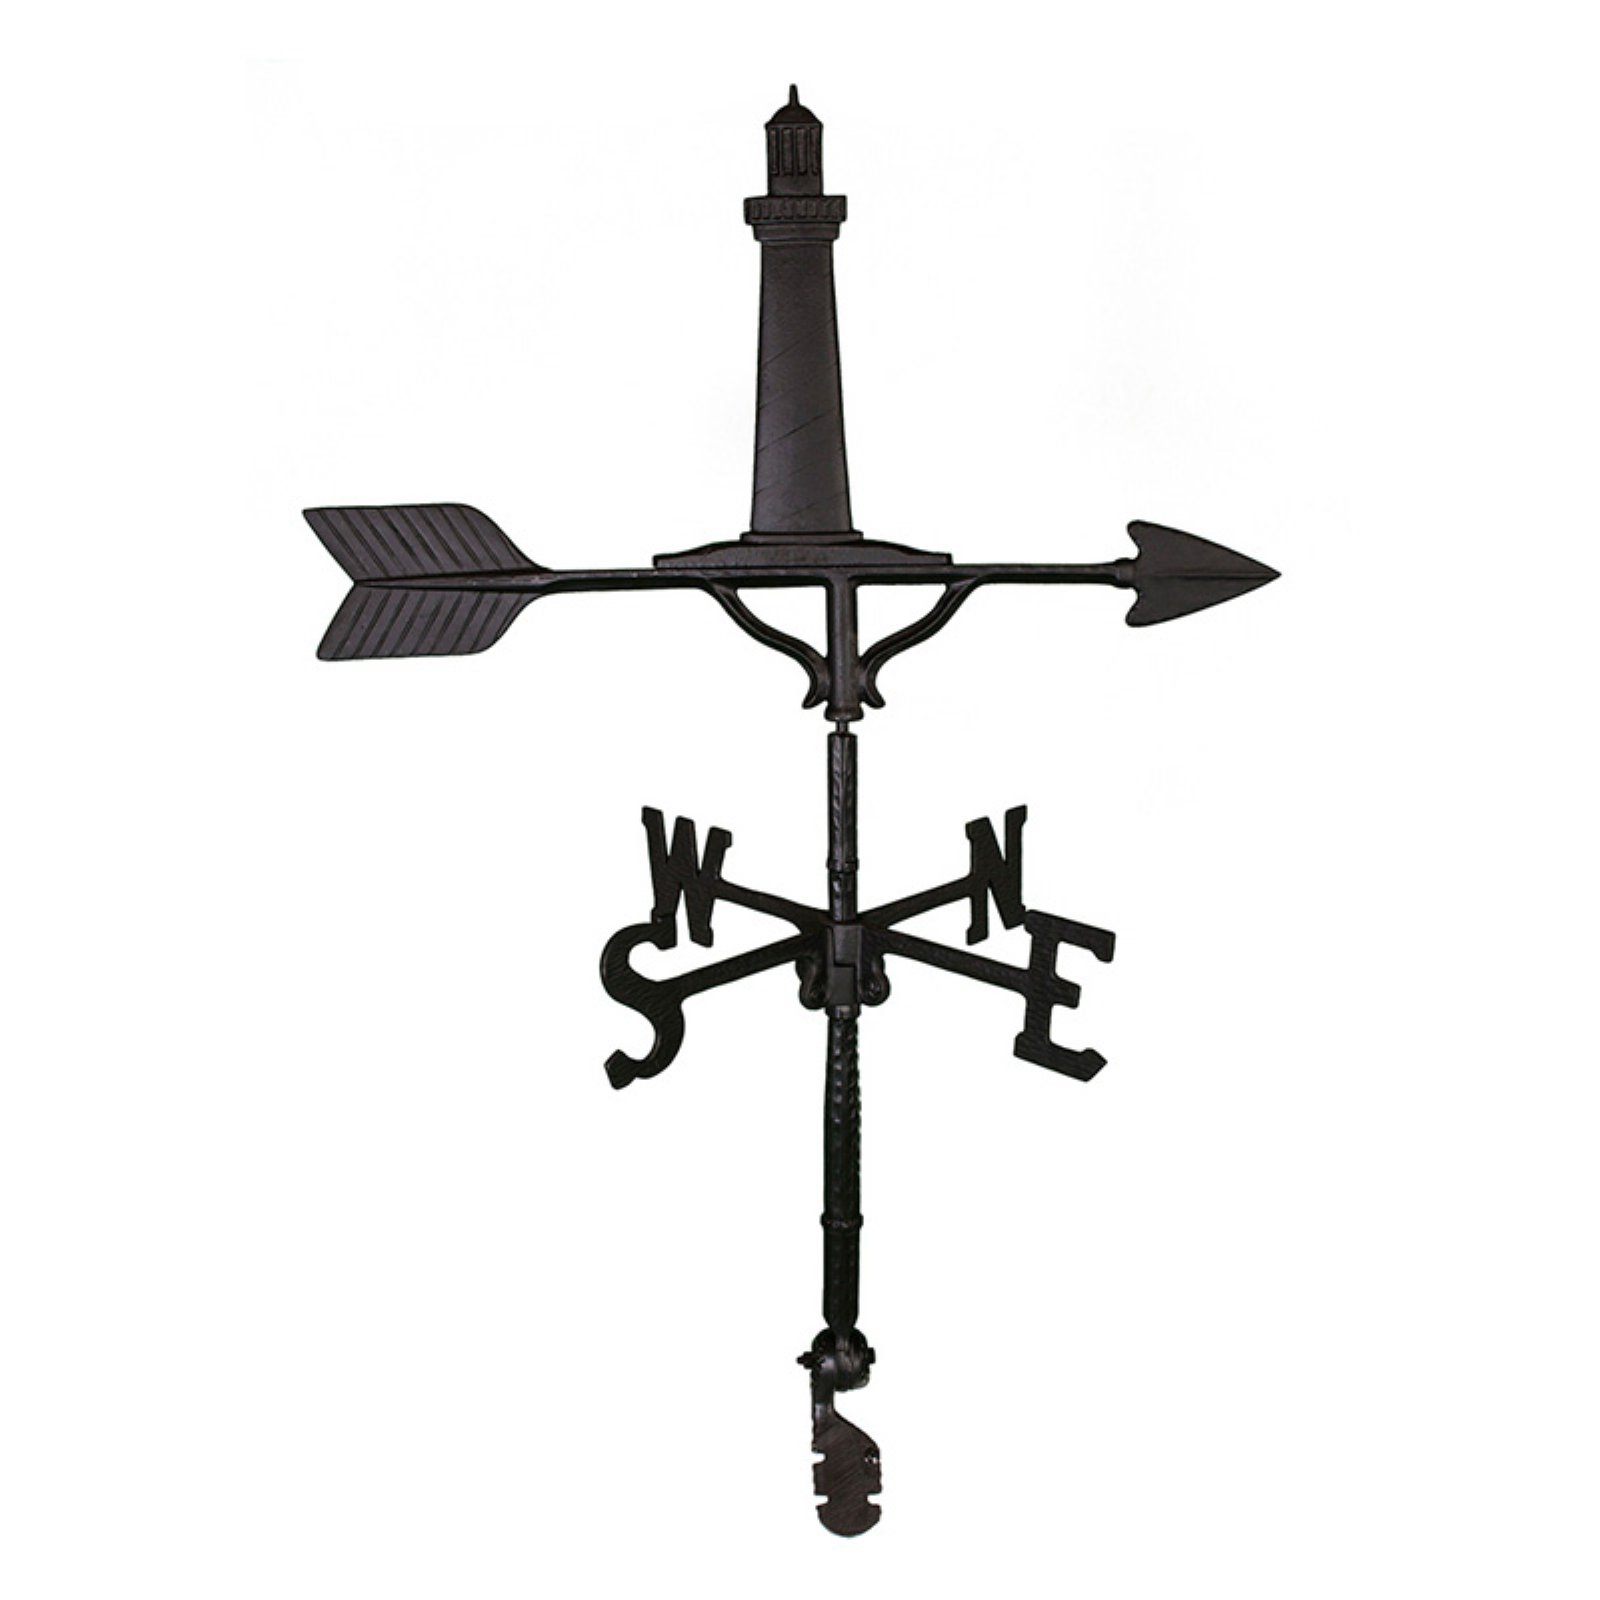 Black Cape Cod Lighthouse Weathervane 32 in. by Montague Metal Products